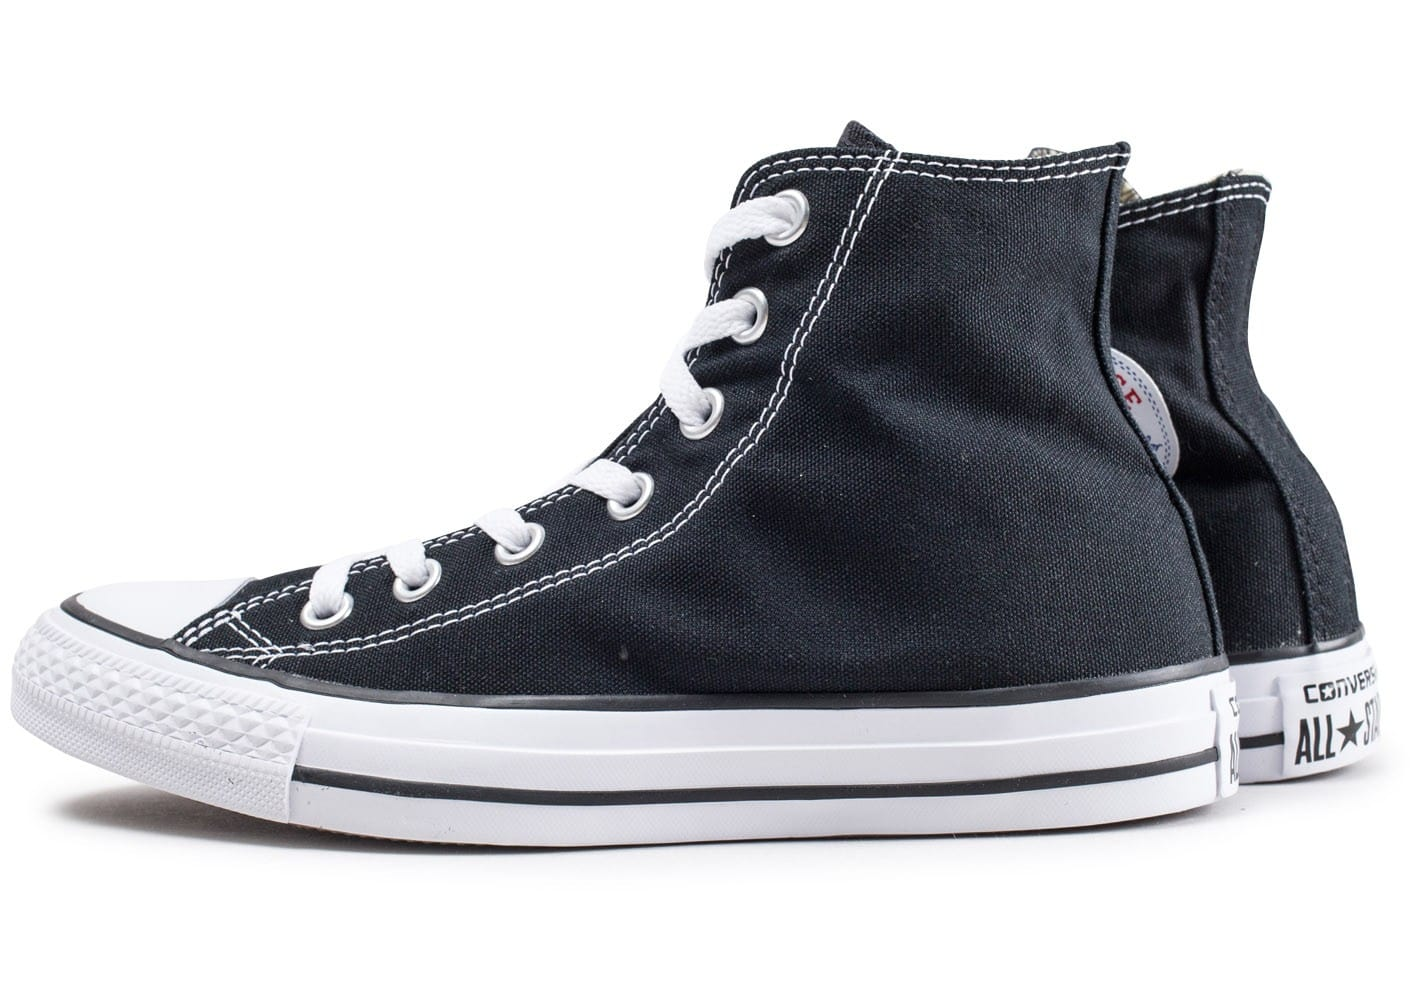 Converse Chuck Taylor All Star noire - Chaussures Baskets ...